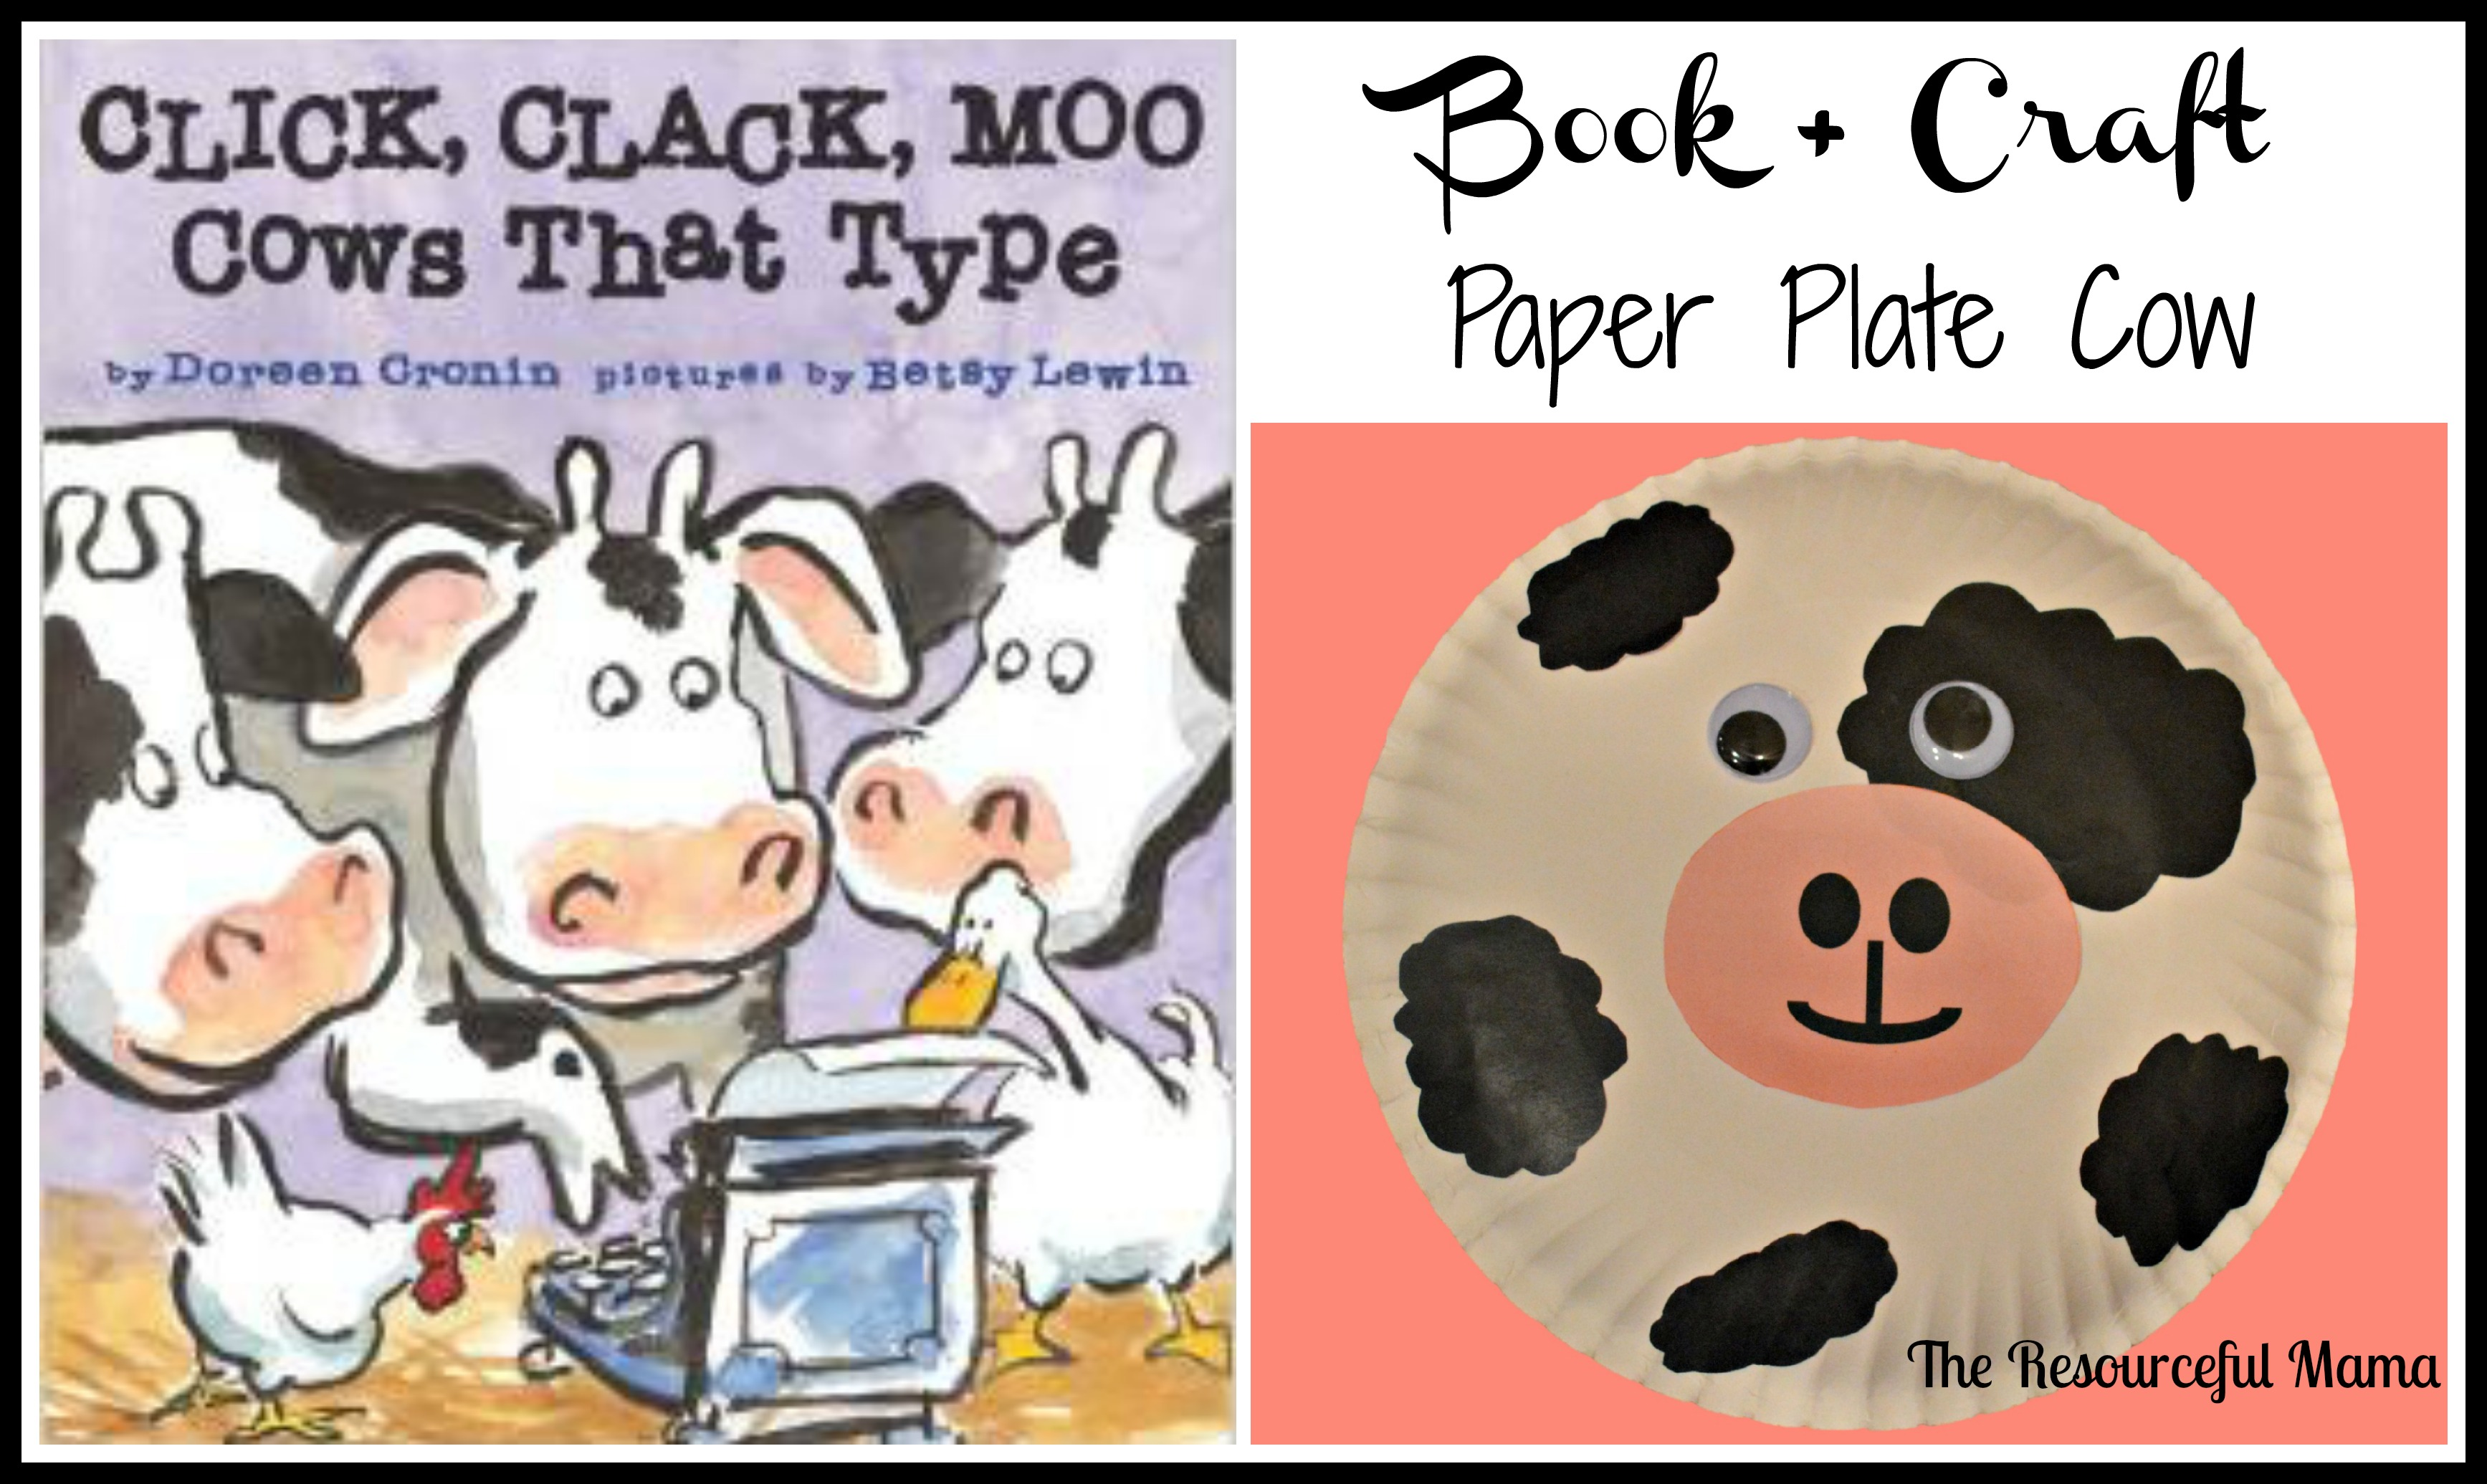 Book+Craft~Click Clack Moo Cows That Type~Paper Plate Cow  sc 1 st  The Resourceful Mama & Book + Craft Paper Plate Cow - The Resourceful Mama